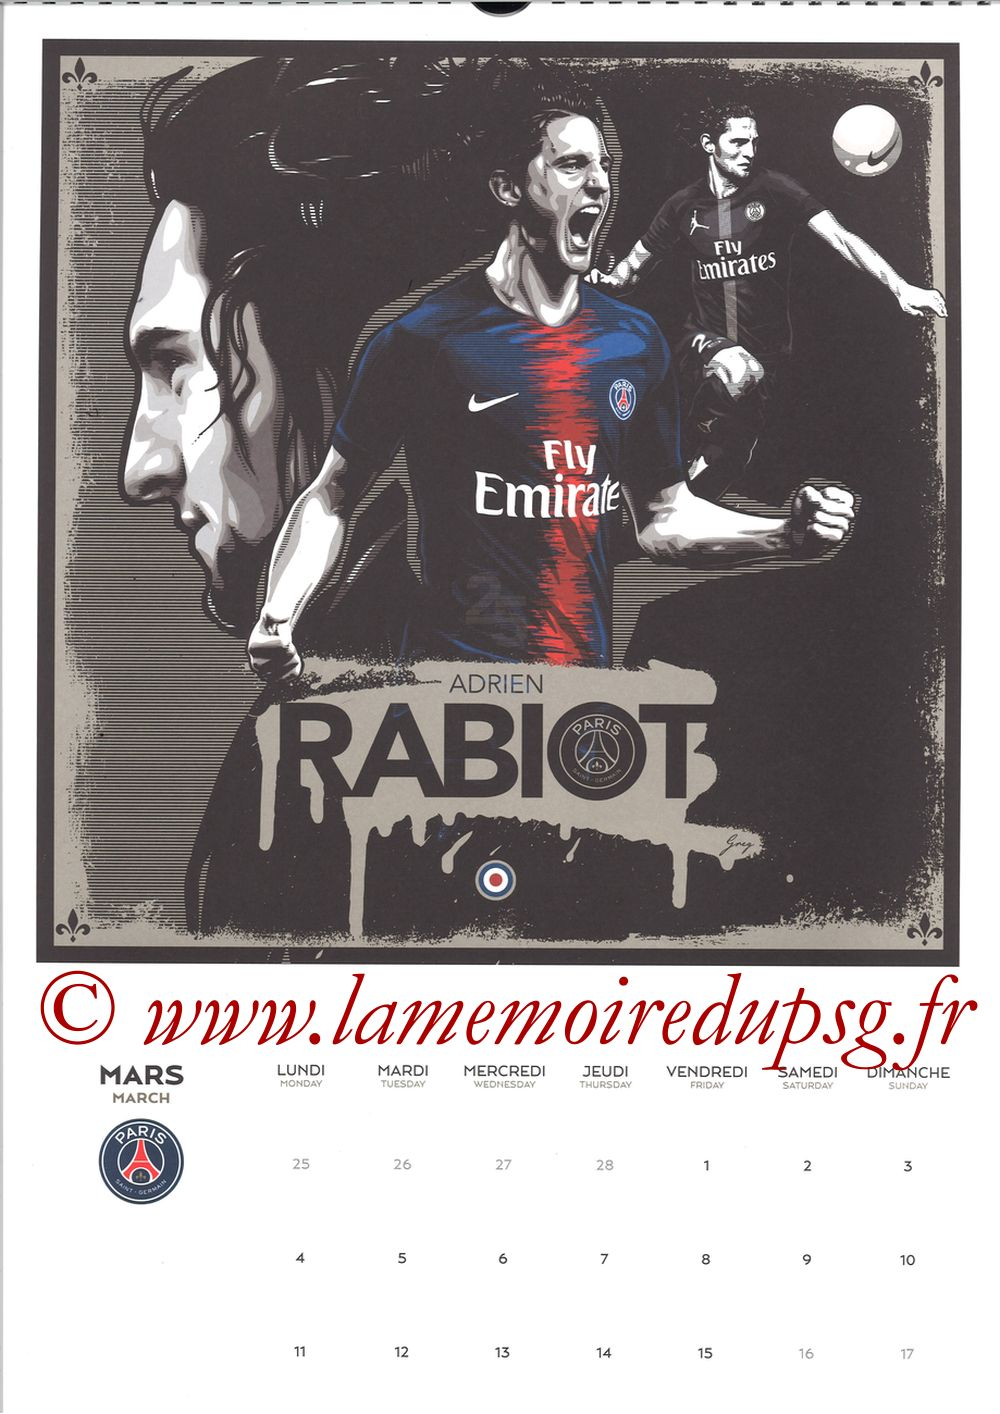 Calendrier PSG 2019 - Page 05 - Adrien RABIOT